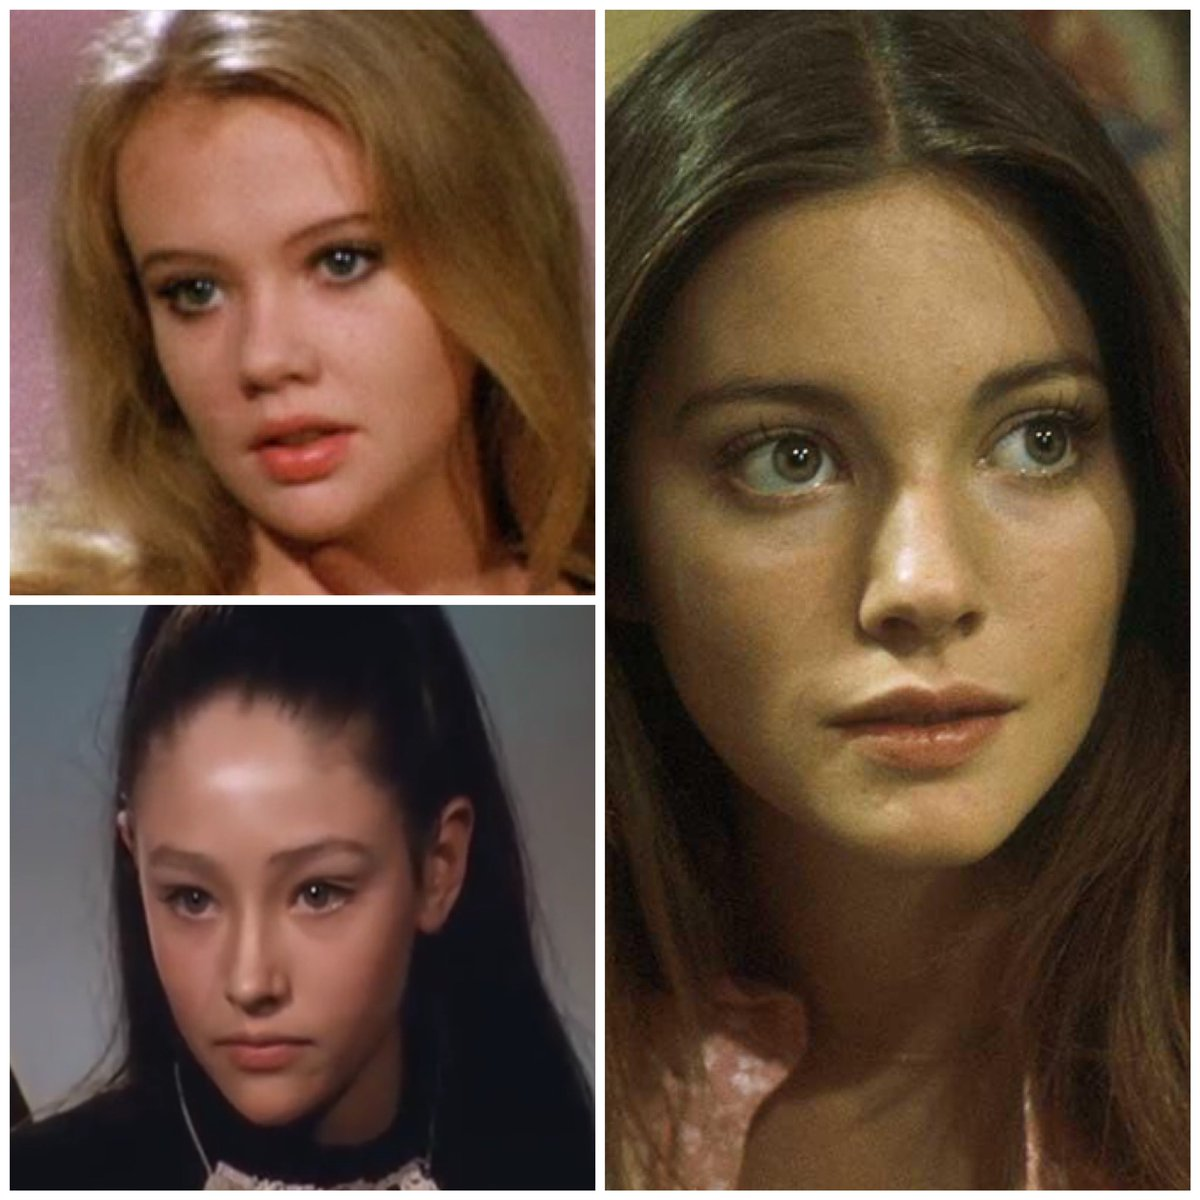 When #LynneFrederick made her film debut #50YearsAgo she instantly became an overnight sensation. Hailed as one of Hollywood's most promising newcomers, she seemed destined to  follow in the footsteps of #HayleyMills and #OliviaHussey  • #LynneFrederickFanPage #EnglishRosepic.twitter.com/go4AK6lKPP